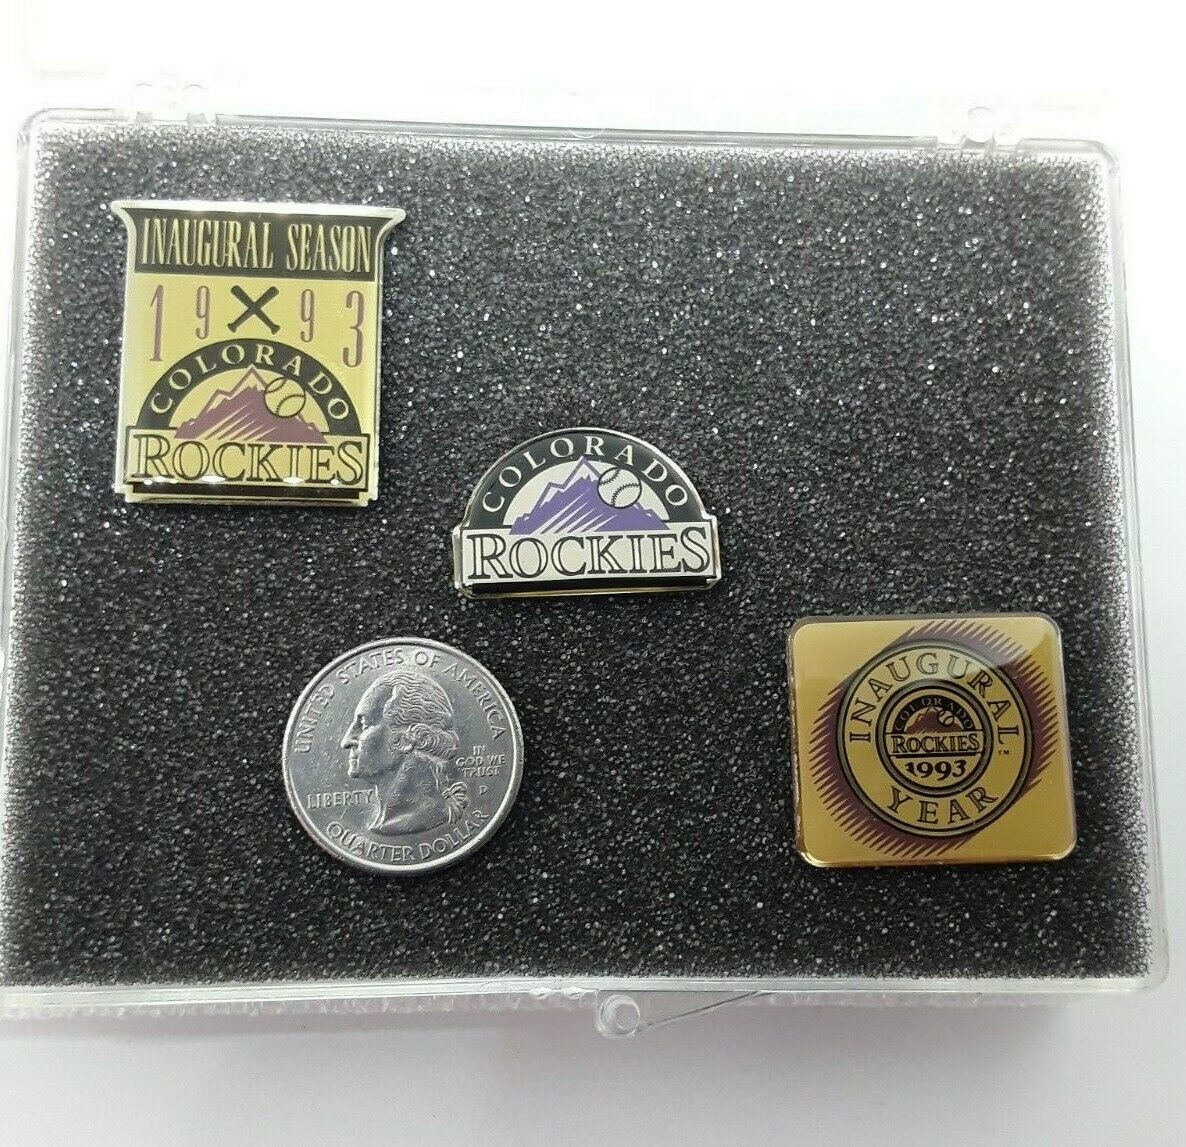 1993 MLB Colorado Rockies Inaugural Season Limited Condition Pin Set